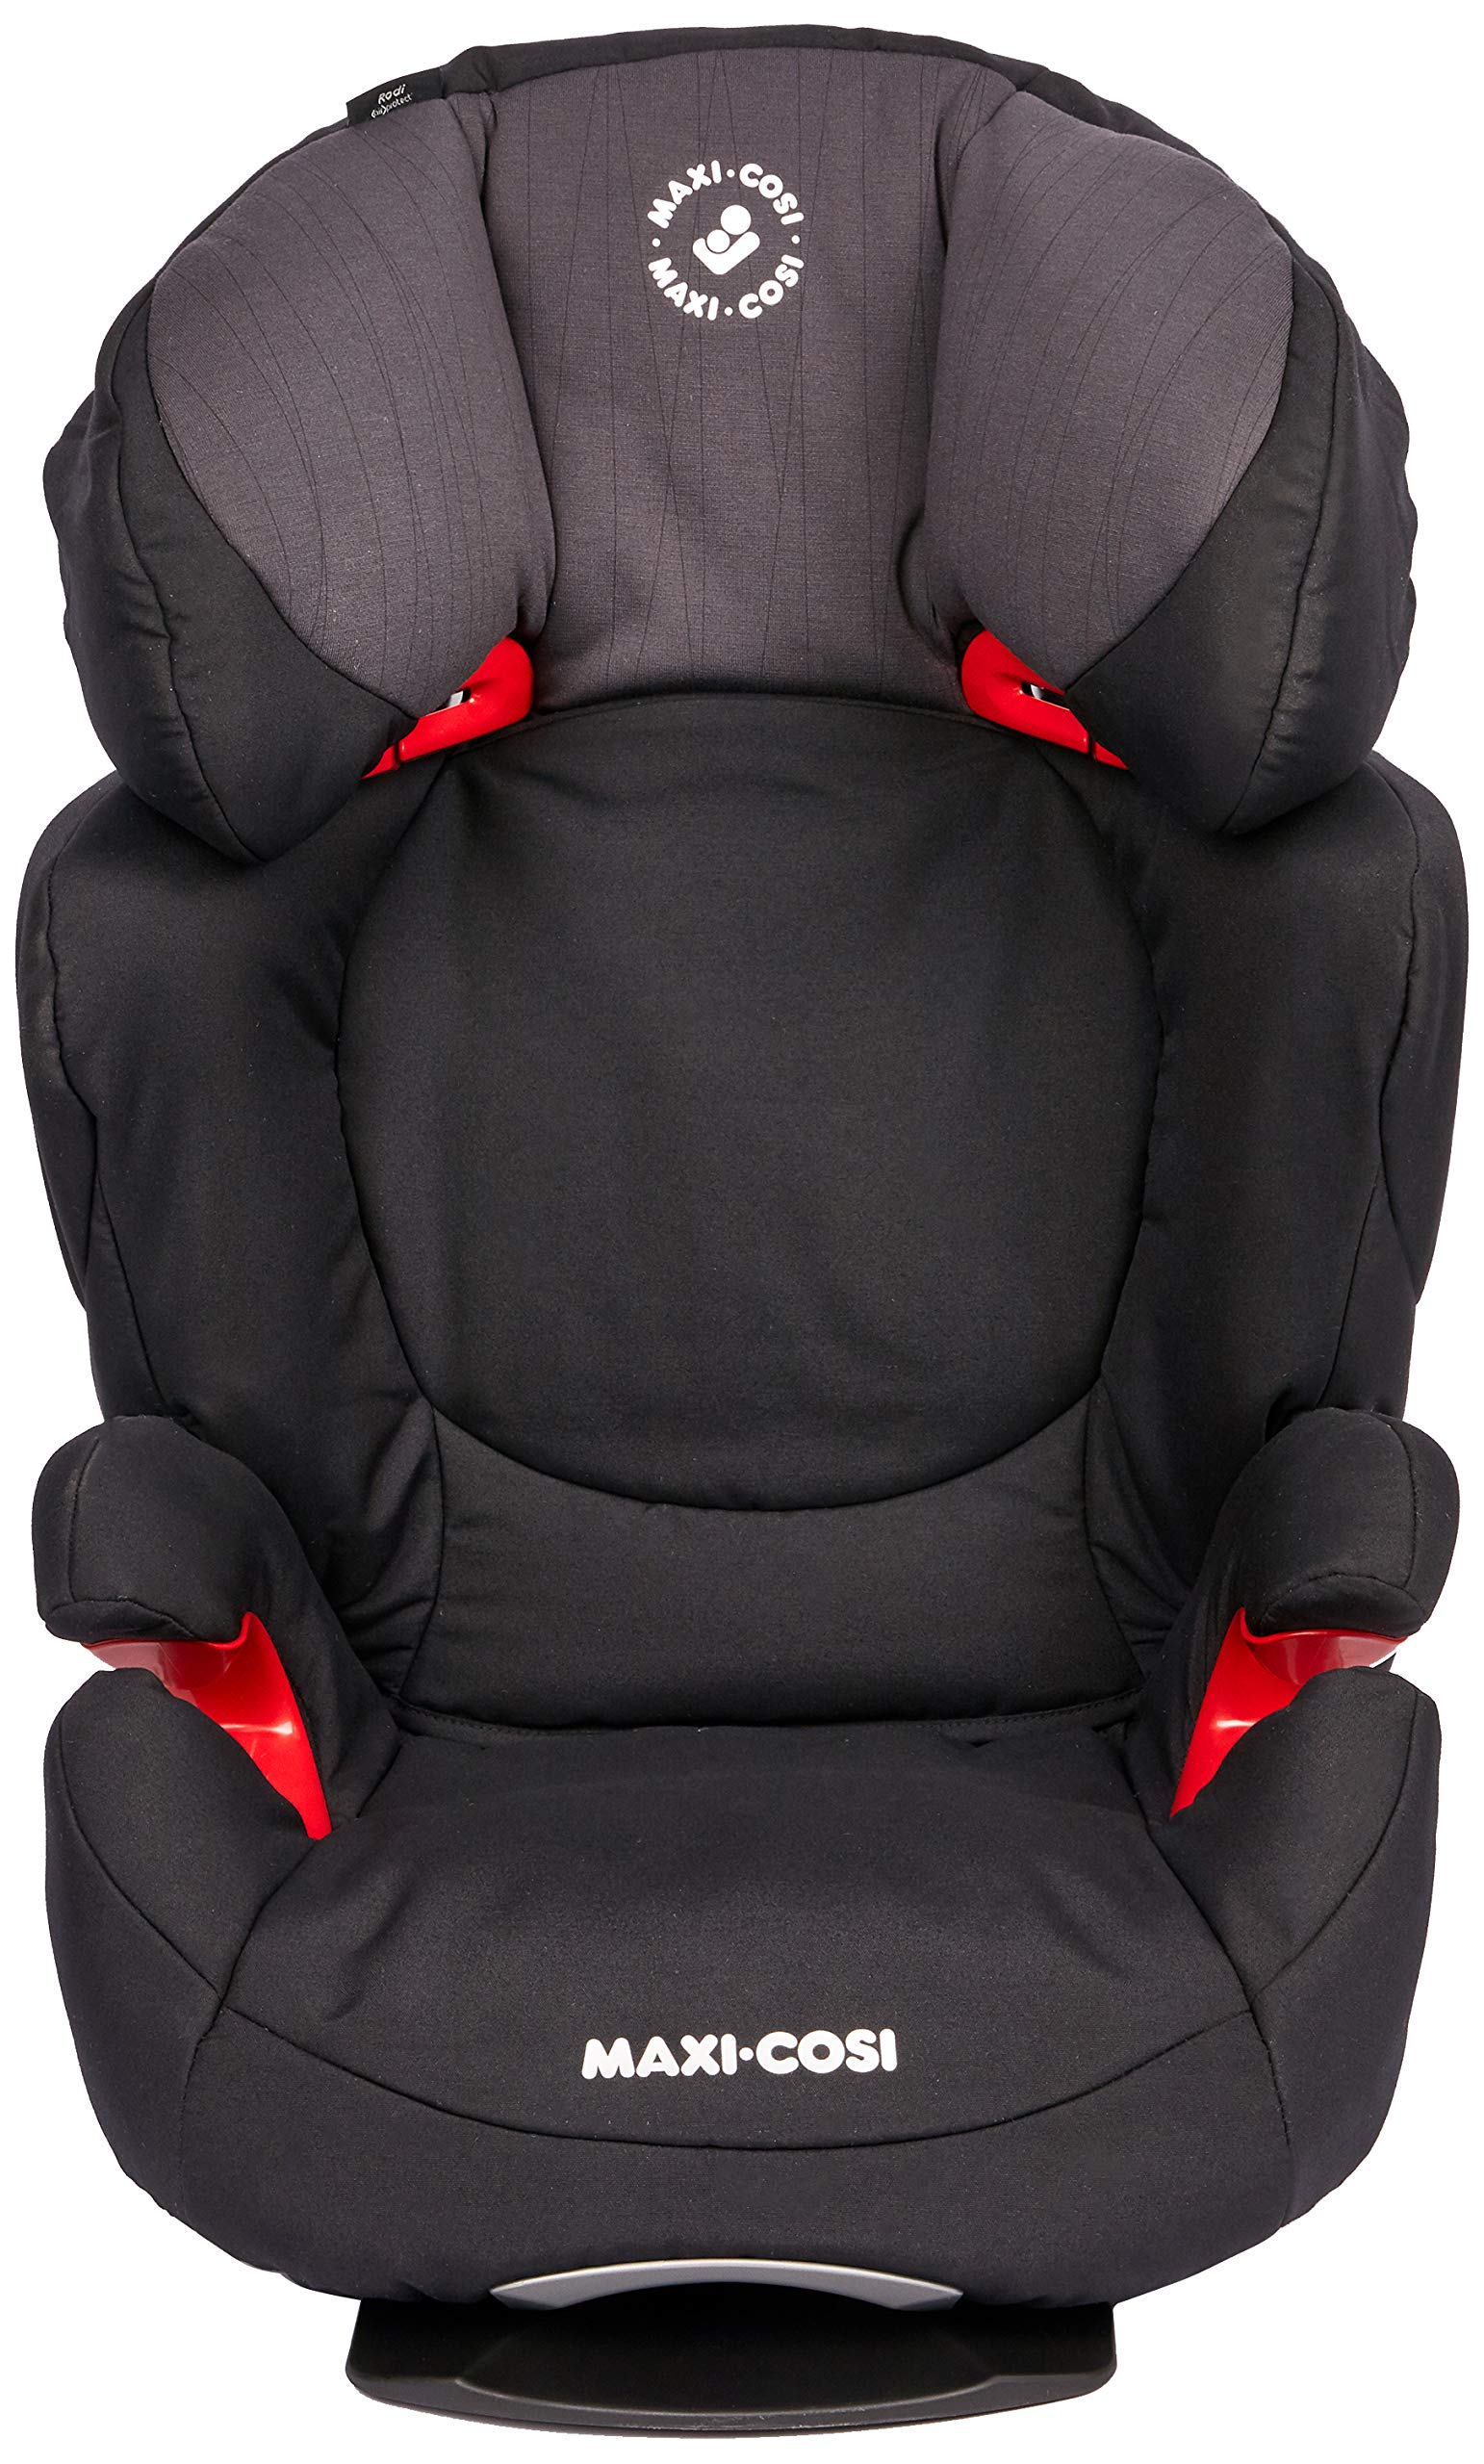 Maxi-Cosi Rodi AirProtect Child Car Seat, Lightweight Highback Booster, 3.5-12 Years, 15-36 kg, Frequency Black Maxi-Cosi Child car seat, suitable from 3.5 to 12 years (15 - 36kg) Easily install this safe car seat with a 3-point seat belt and attach the anchorage point in the head rest through your cars head rest Patented air protect technology in headrest reduces the risk of head and neck injuries up to 20 percent 2